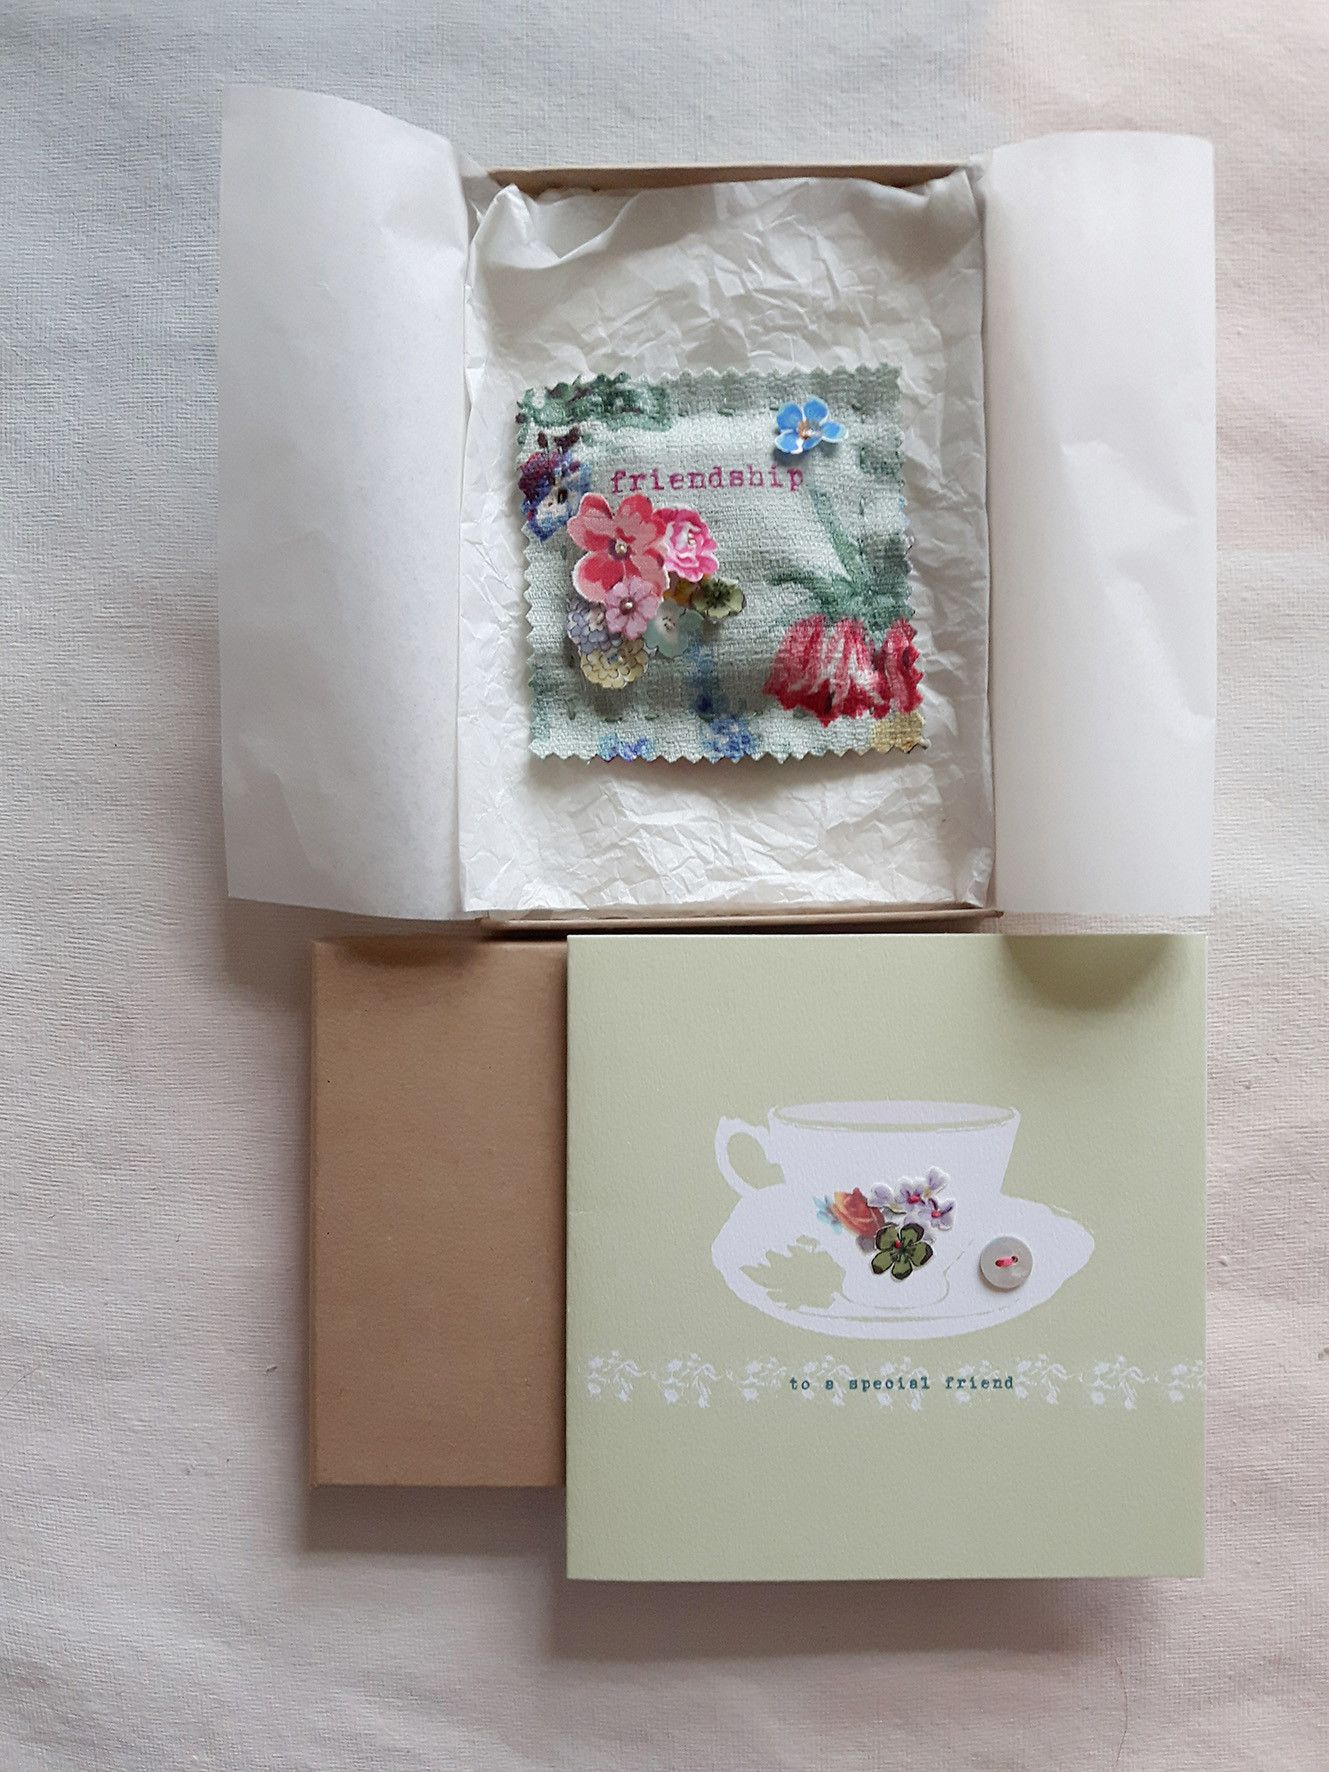 Friendship gift collection craft ideas pinterest friendship a special card and boxed lavender linen ravioli that has been hand made here in the linen garden studio a perfect scented gift collection kristyandbryce Gallery